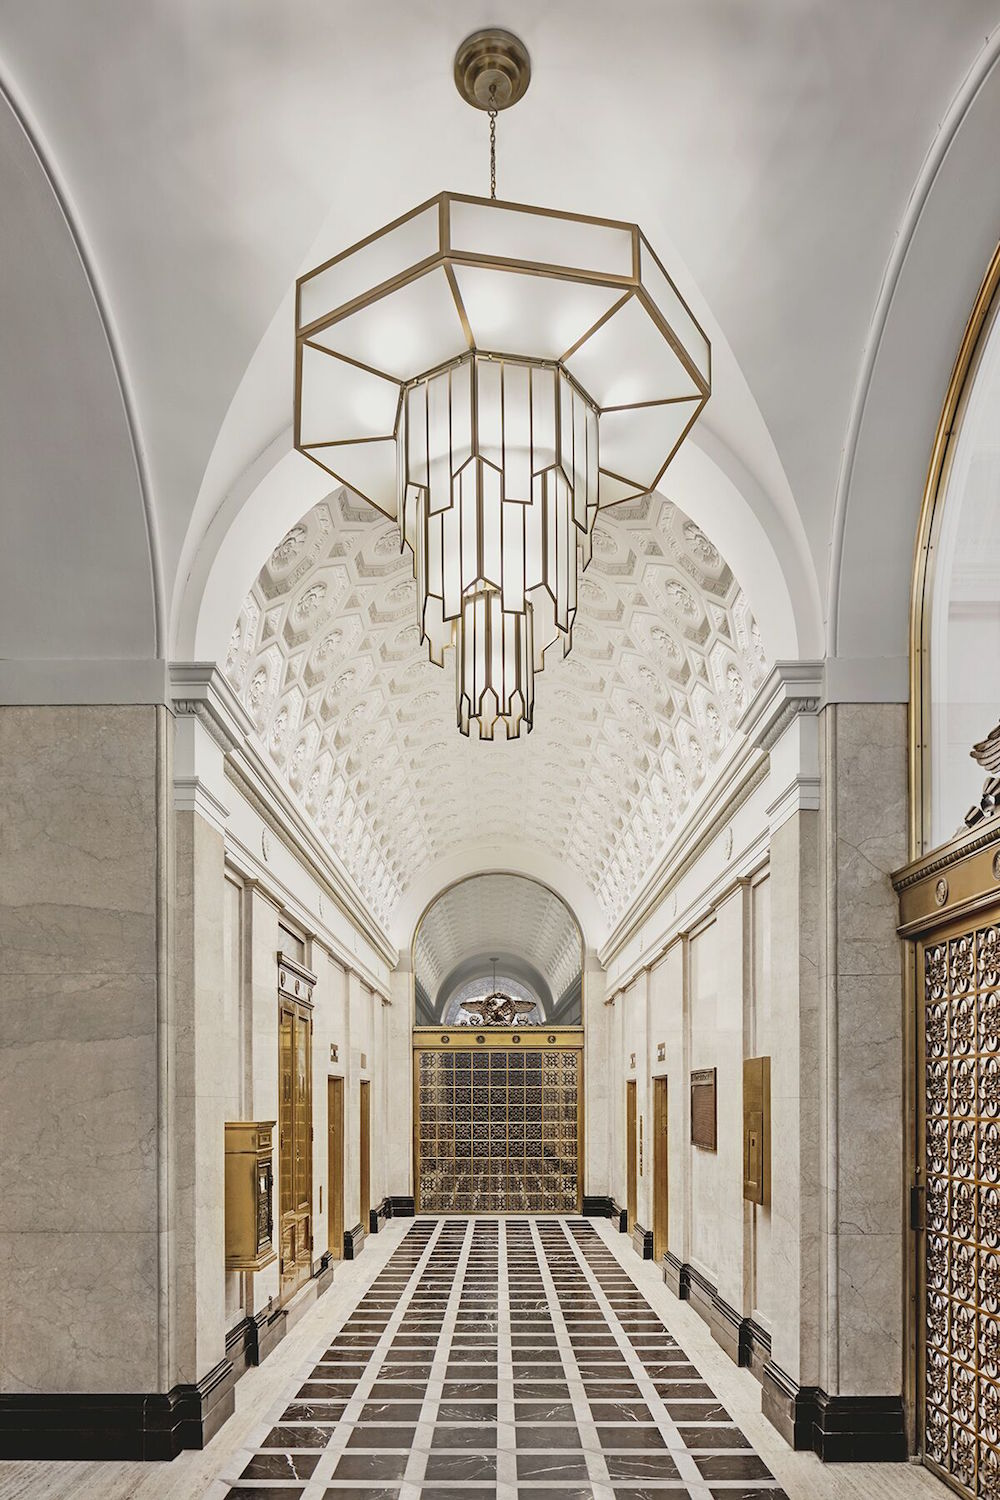 Image caption: The hotel's high-vaulted ceilings were blank canvas' for Jacu Strauss' vision for a bold, inviting entrance into the hotel. | Image credit: Riggs Washington D.C.